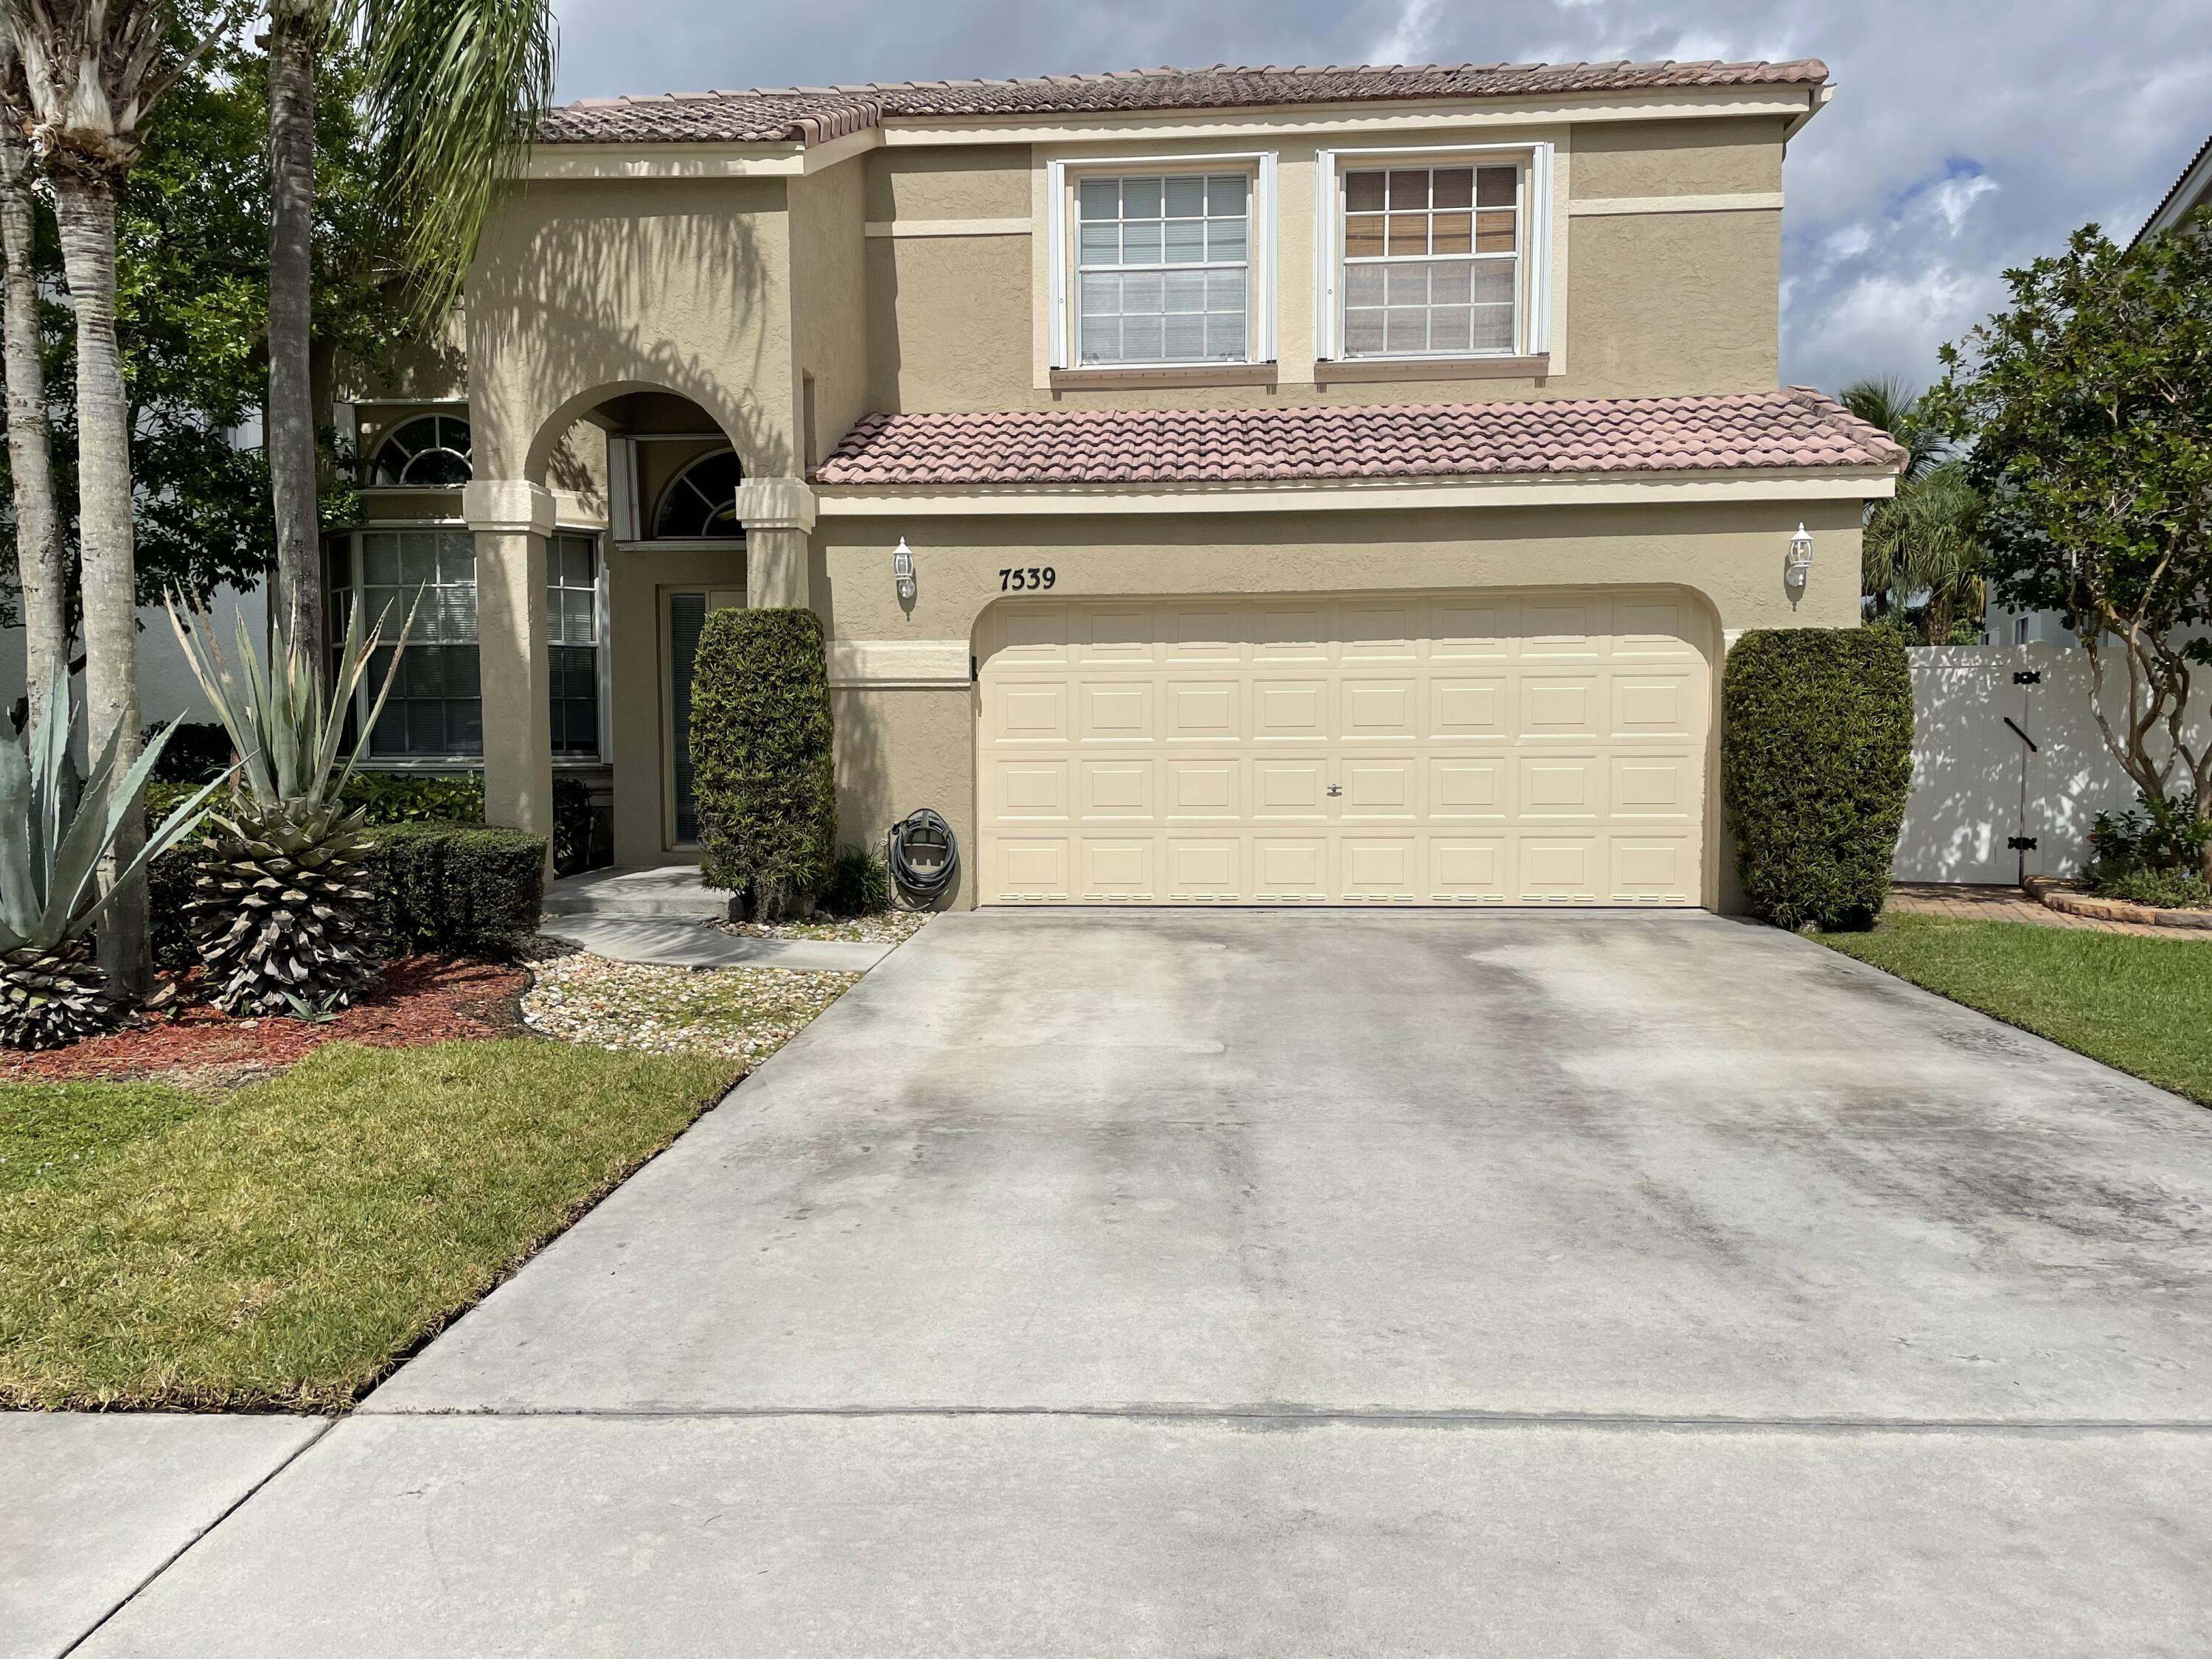 Home for sale in Smith Farms Lake Worth Florida